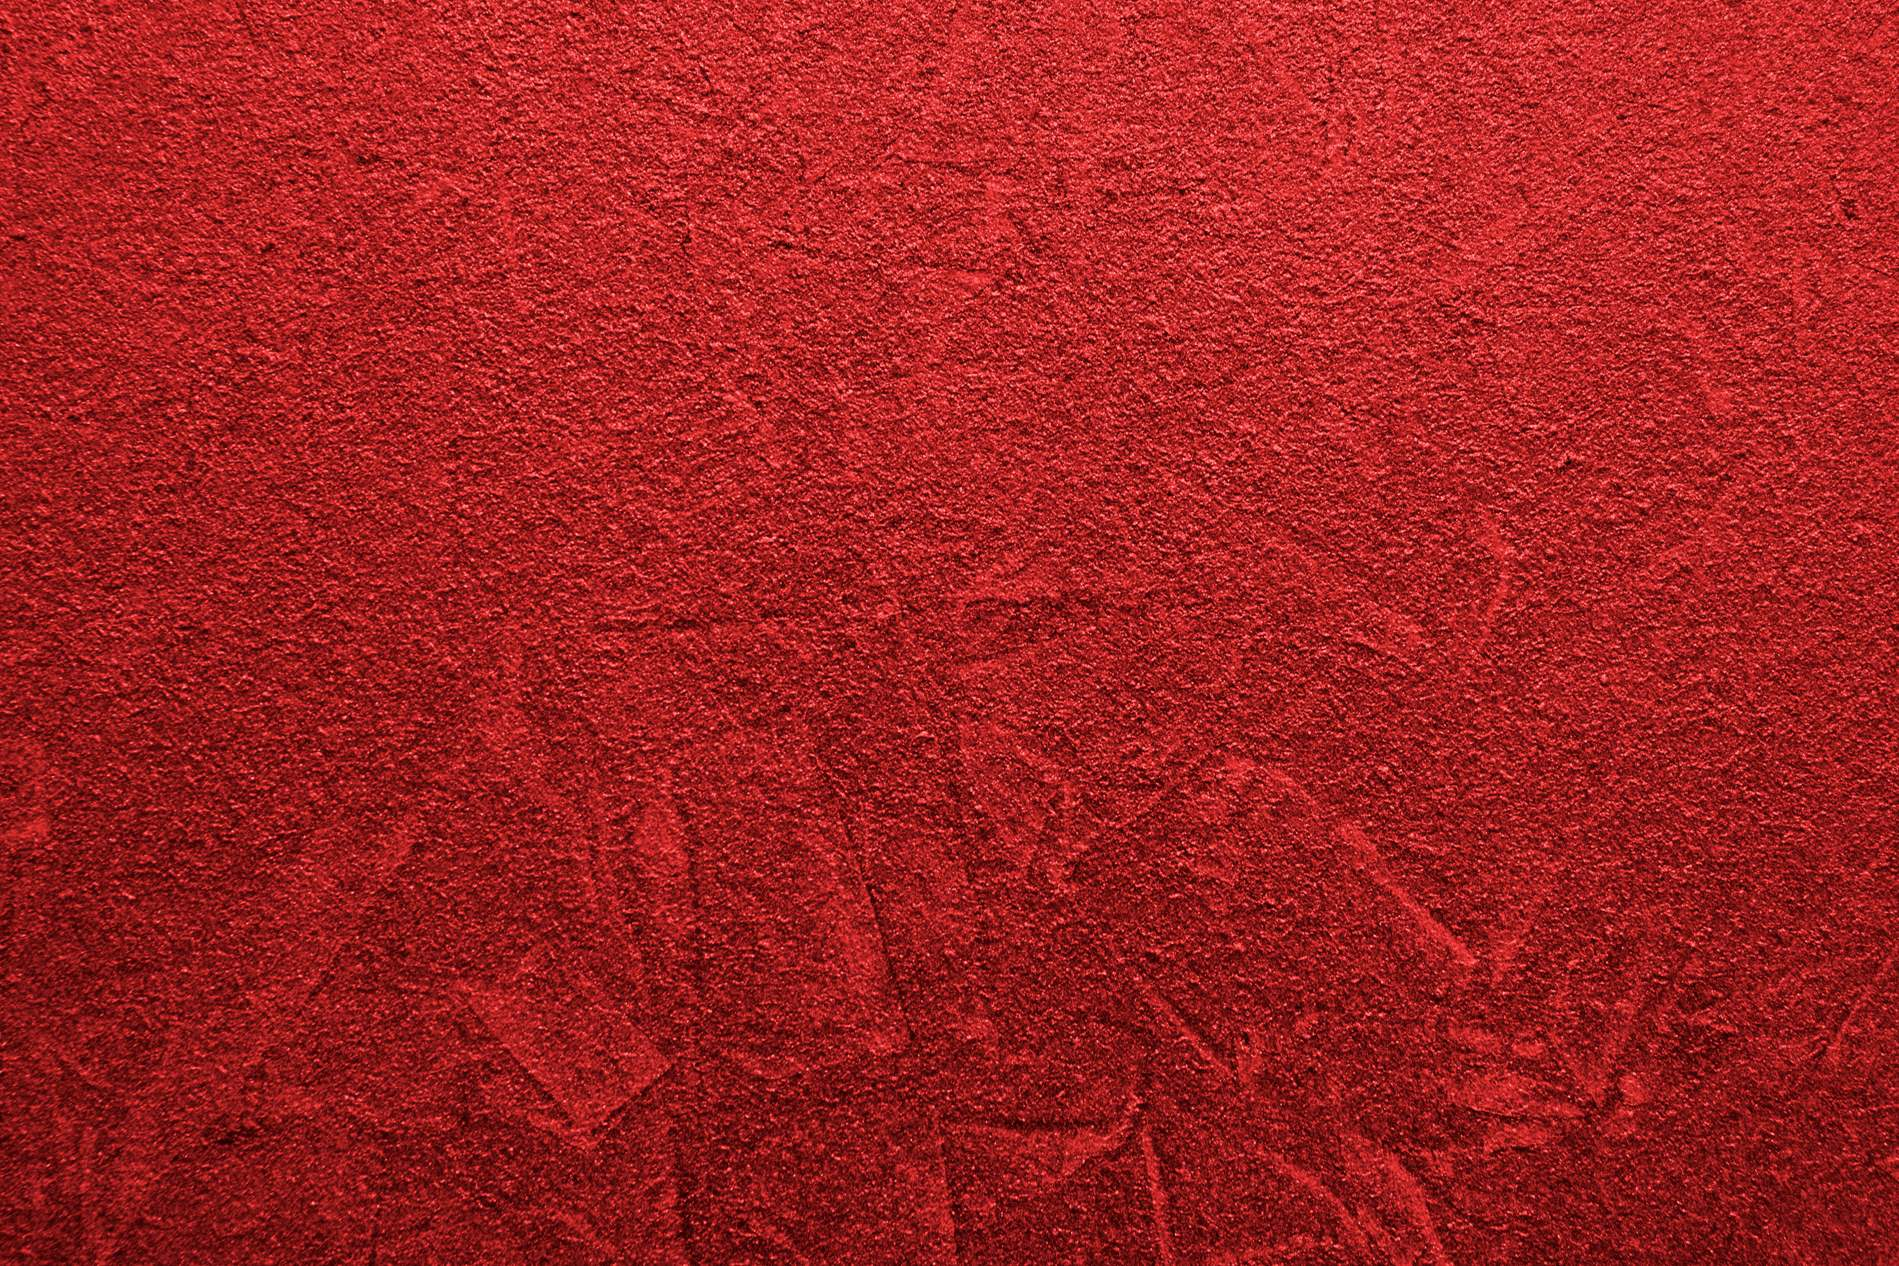 Red Texture Wall : ... textures wall textures backgrounds and textures vintage backgrounds